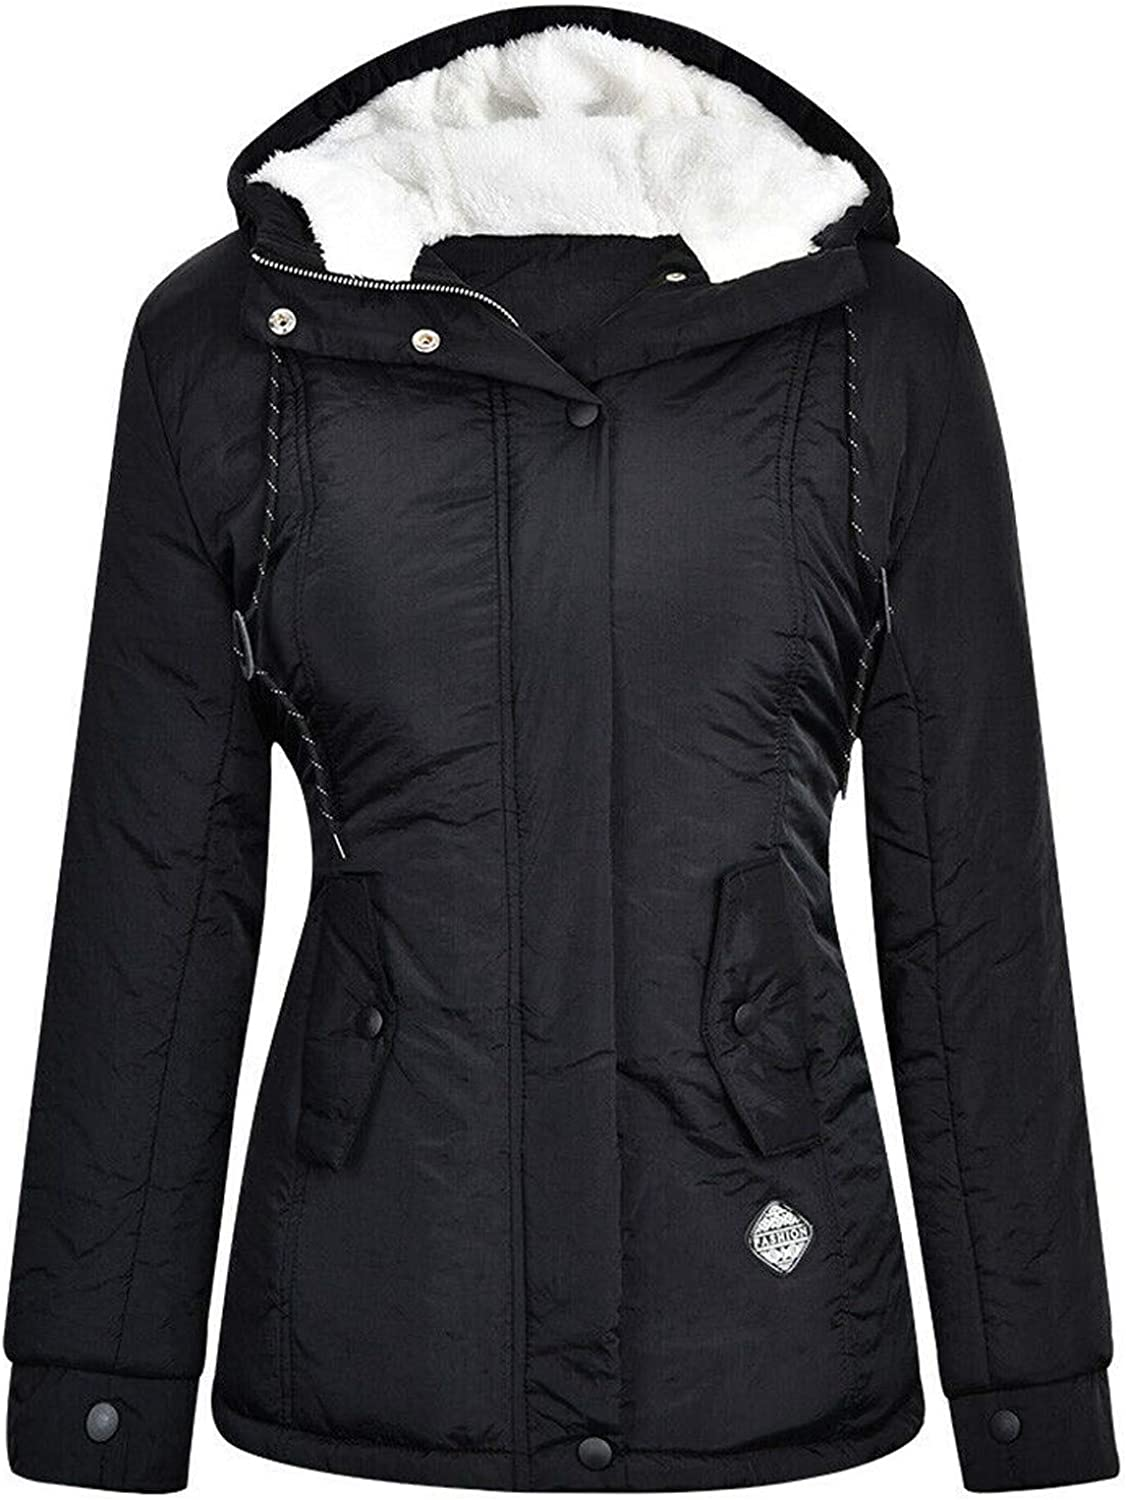 Women's discount Winter Thicken Jacket Cotton Lined Coat Inventory cleanup selling sale with Fleece Hood